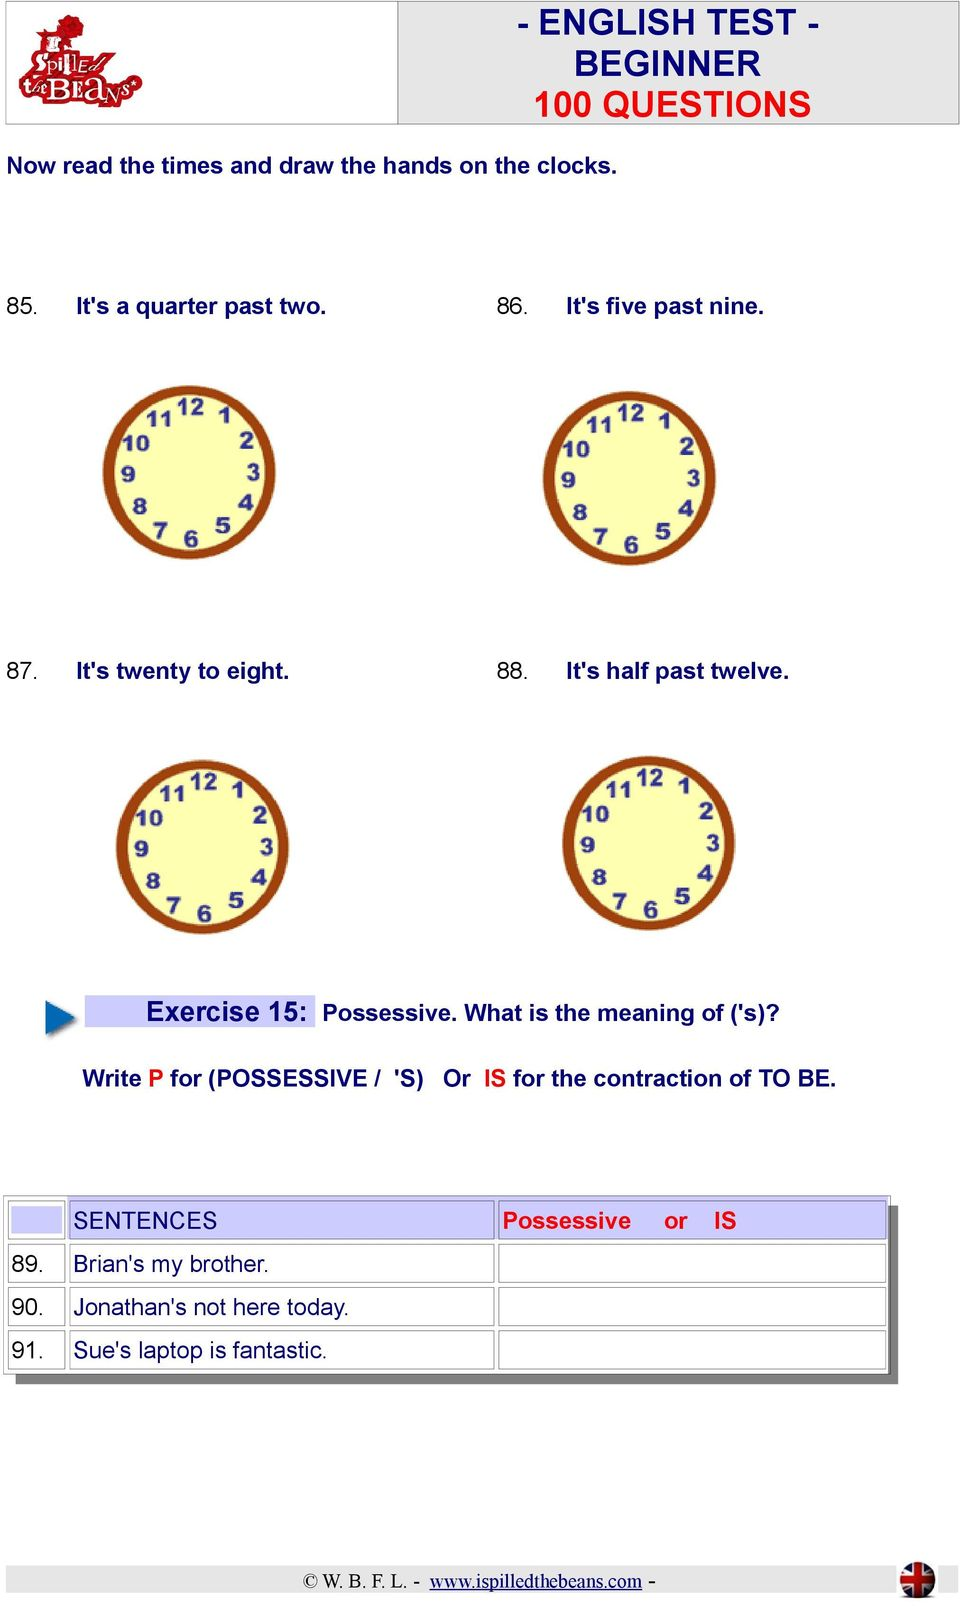 What is the meaning of ('s)? Write P for (POSSESSIVE / 'S) Or IS for the contraction of TO BE.